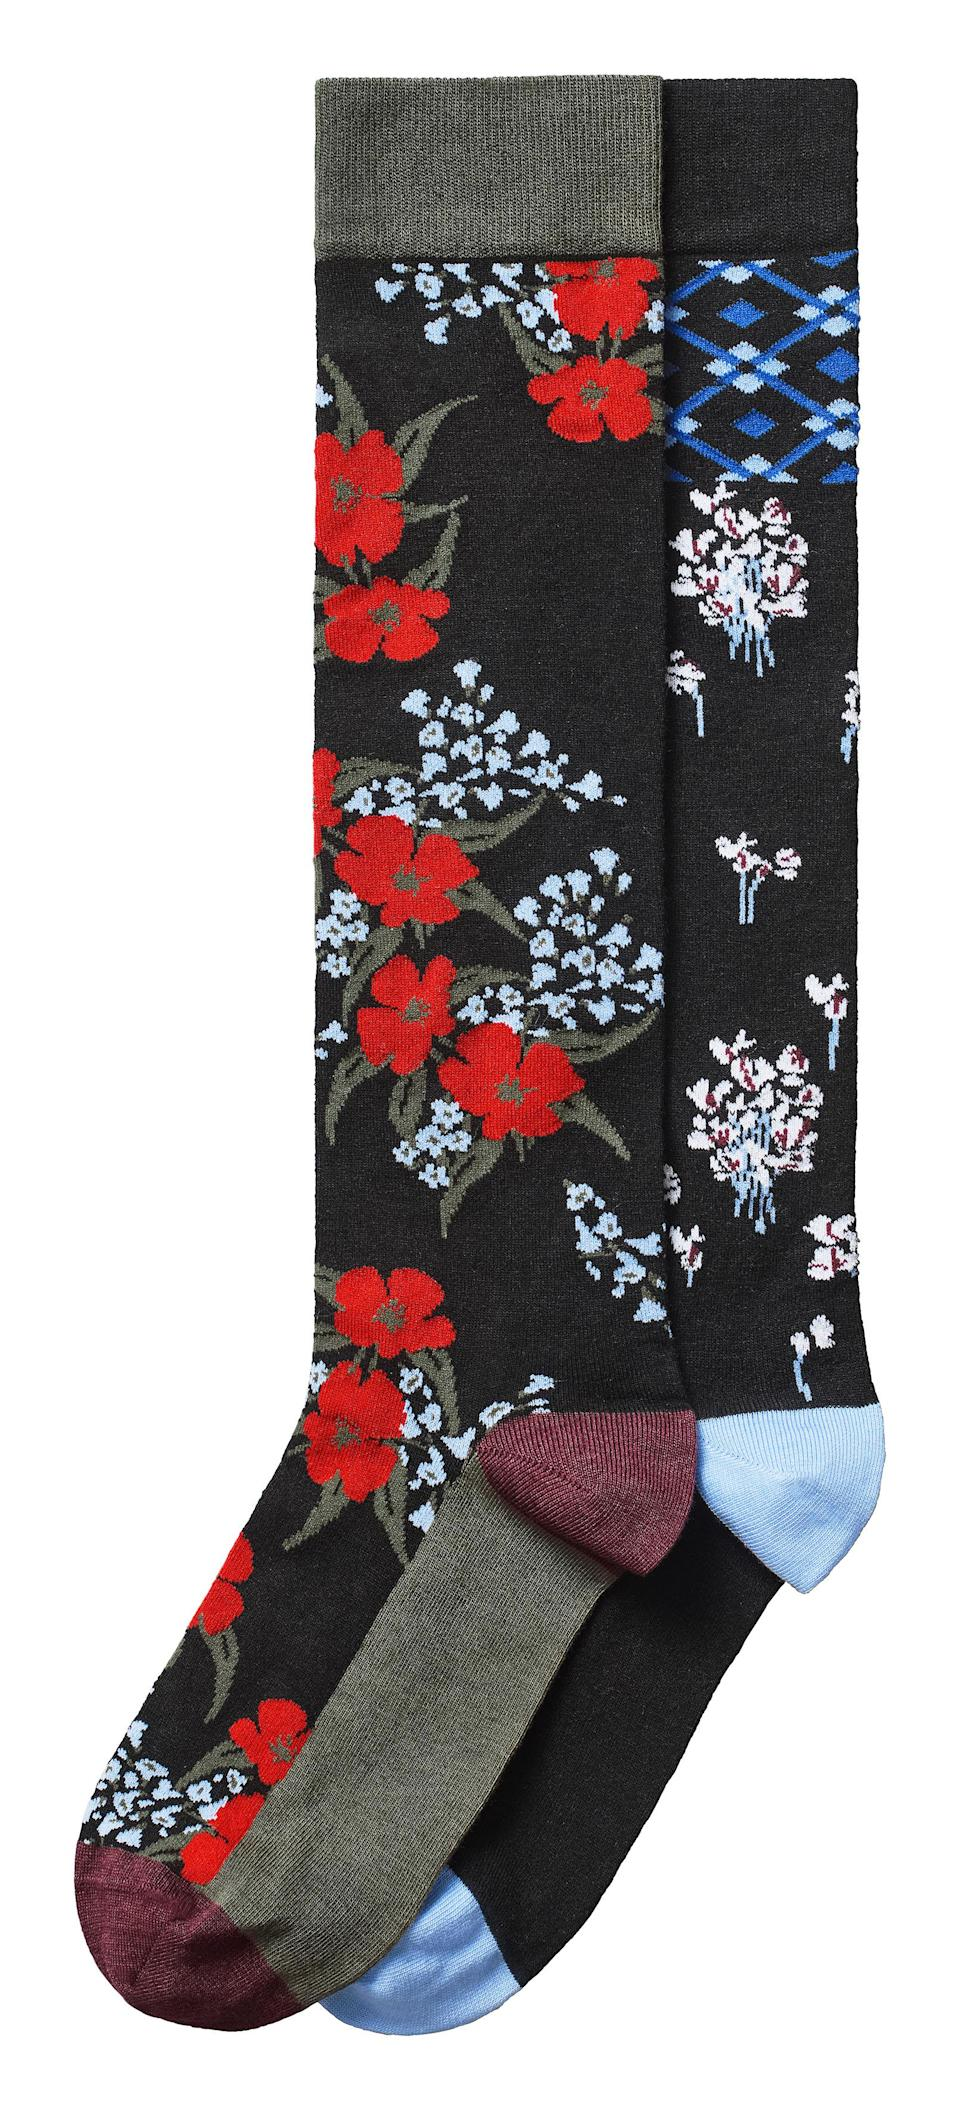 """<p>Yes, socks may not be the most fascinating item when it comes to our wardrobes but we think we may have just found a way to look forward to the colder months ahead… <em><a rel=""""nofollow noopener"""" href=""""http://www2.hm.com/en_gb/index.html"""" target=""""_blank"""" data-ylk=""""slk:H&M"""" class=""""link rapid-noclick-resp"""">H&M</a>, £69.99</em> </p>"""